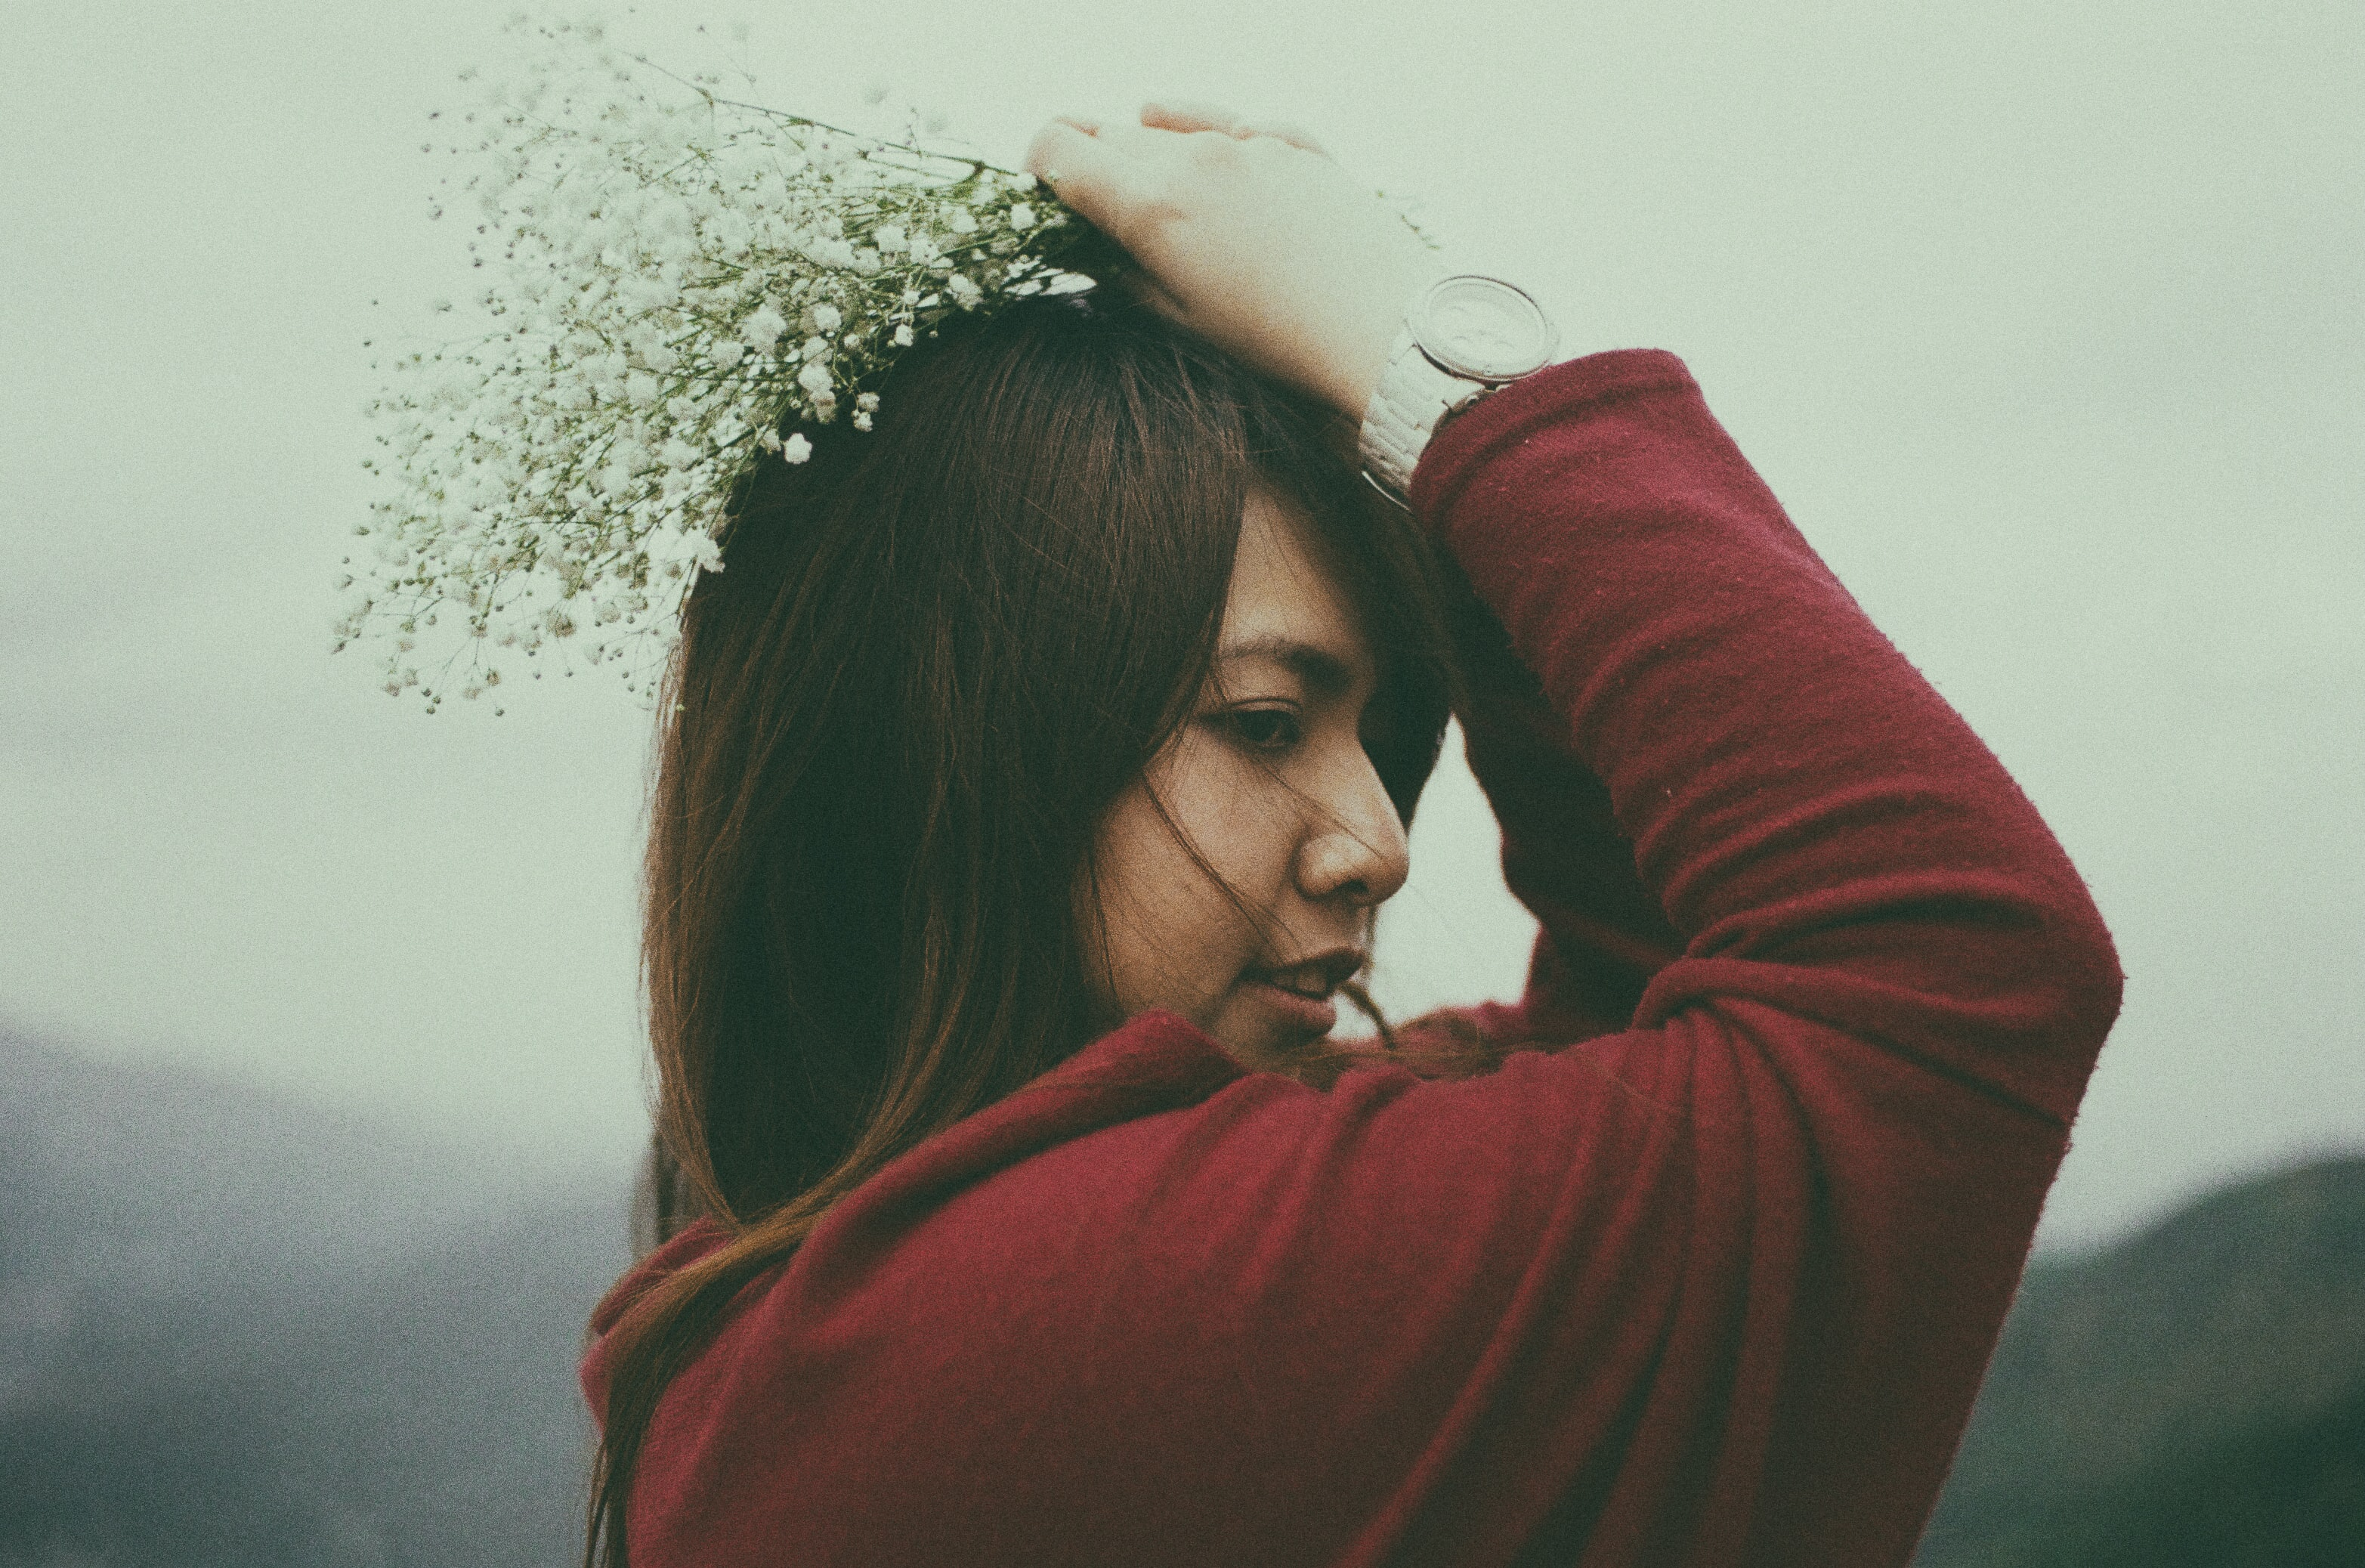 A dark-haired woman holding a bouquet of baby's-breath flowers over her head